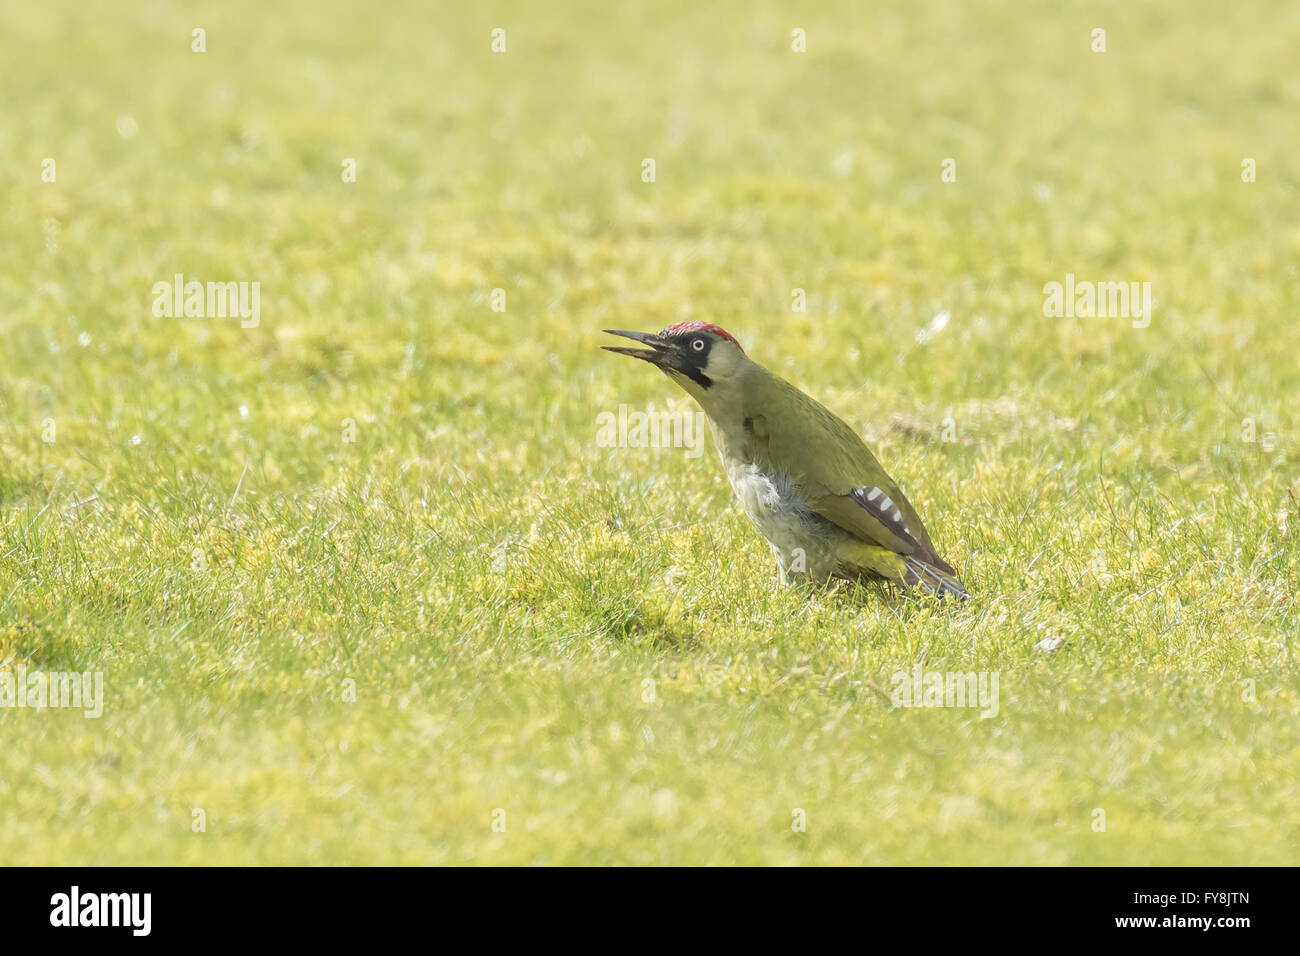 Male and female European green woodpeckers (picus viridis) foraging on a green meadow searching for insects in the - Stock Image